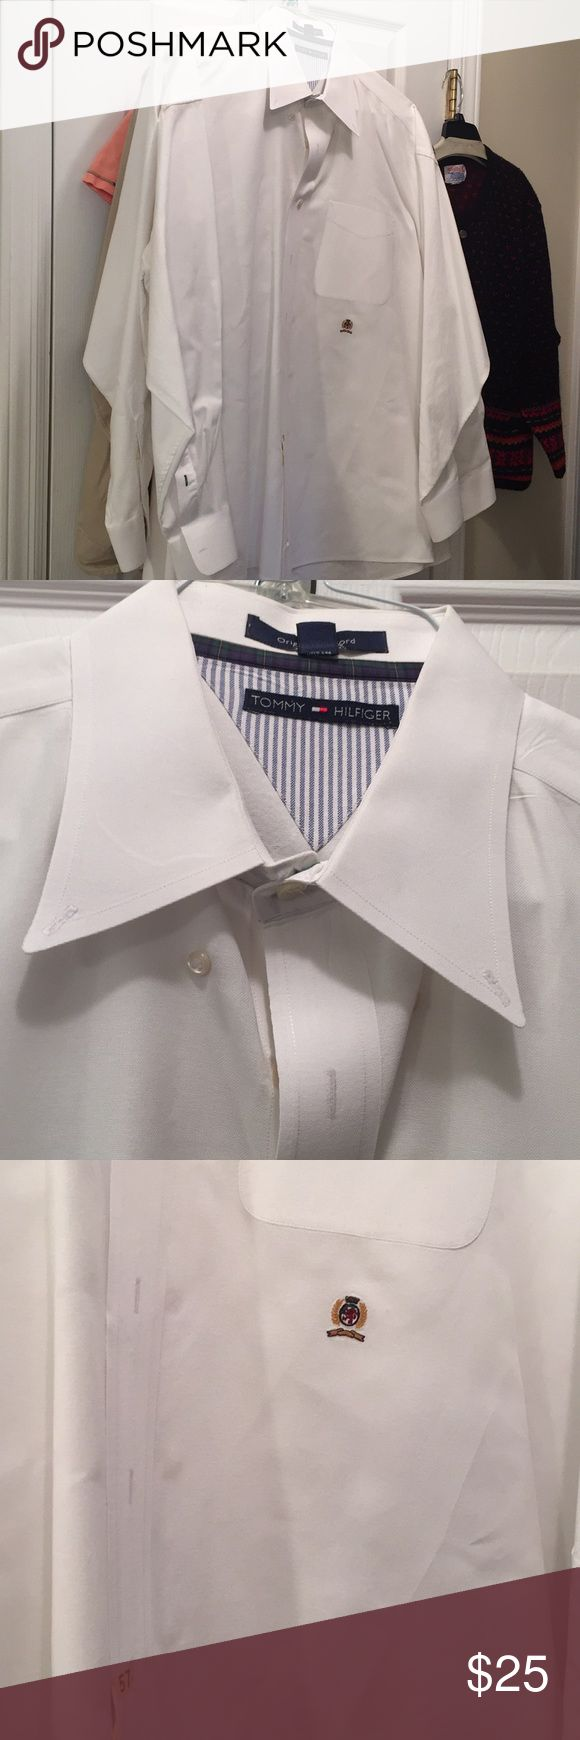 👔 fresh from the dry cleaners! Crisp white EUC looks brand spanking new!  Button down collar. Original Oxford. Size 18 neck, 34-35 sleeves 🎩 Tommy Hilfiger Shirts Dress Shirts